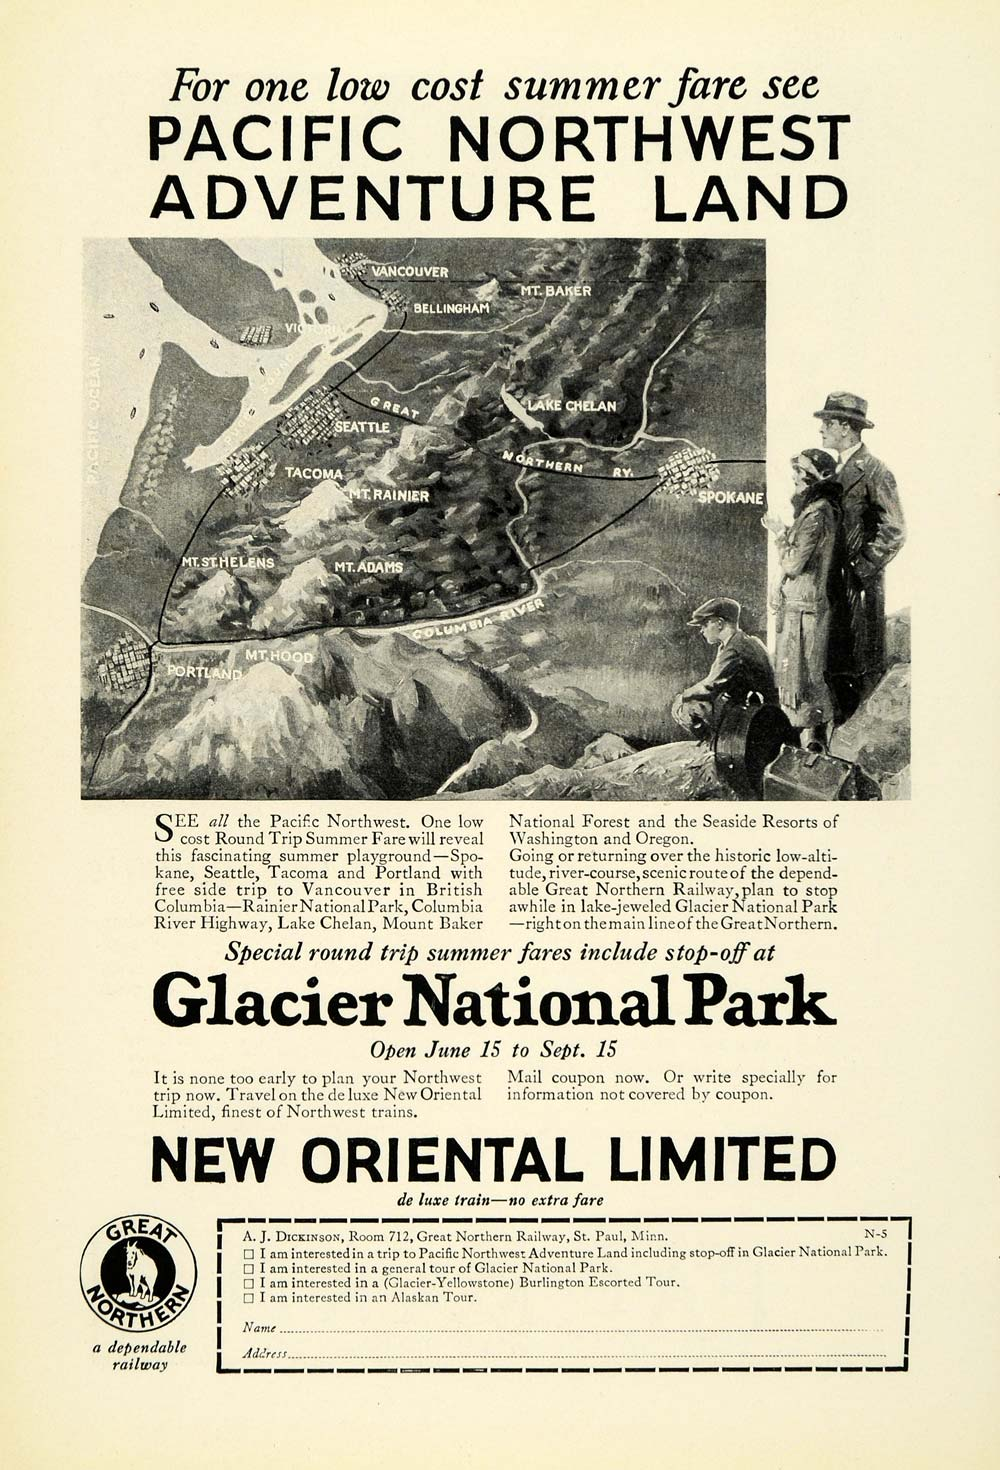 1926 Ad New Oriental Limited Train Travel Glacier National Park Great NGM1